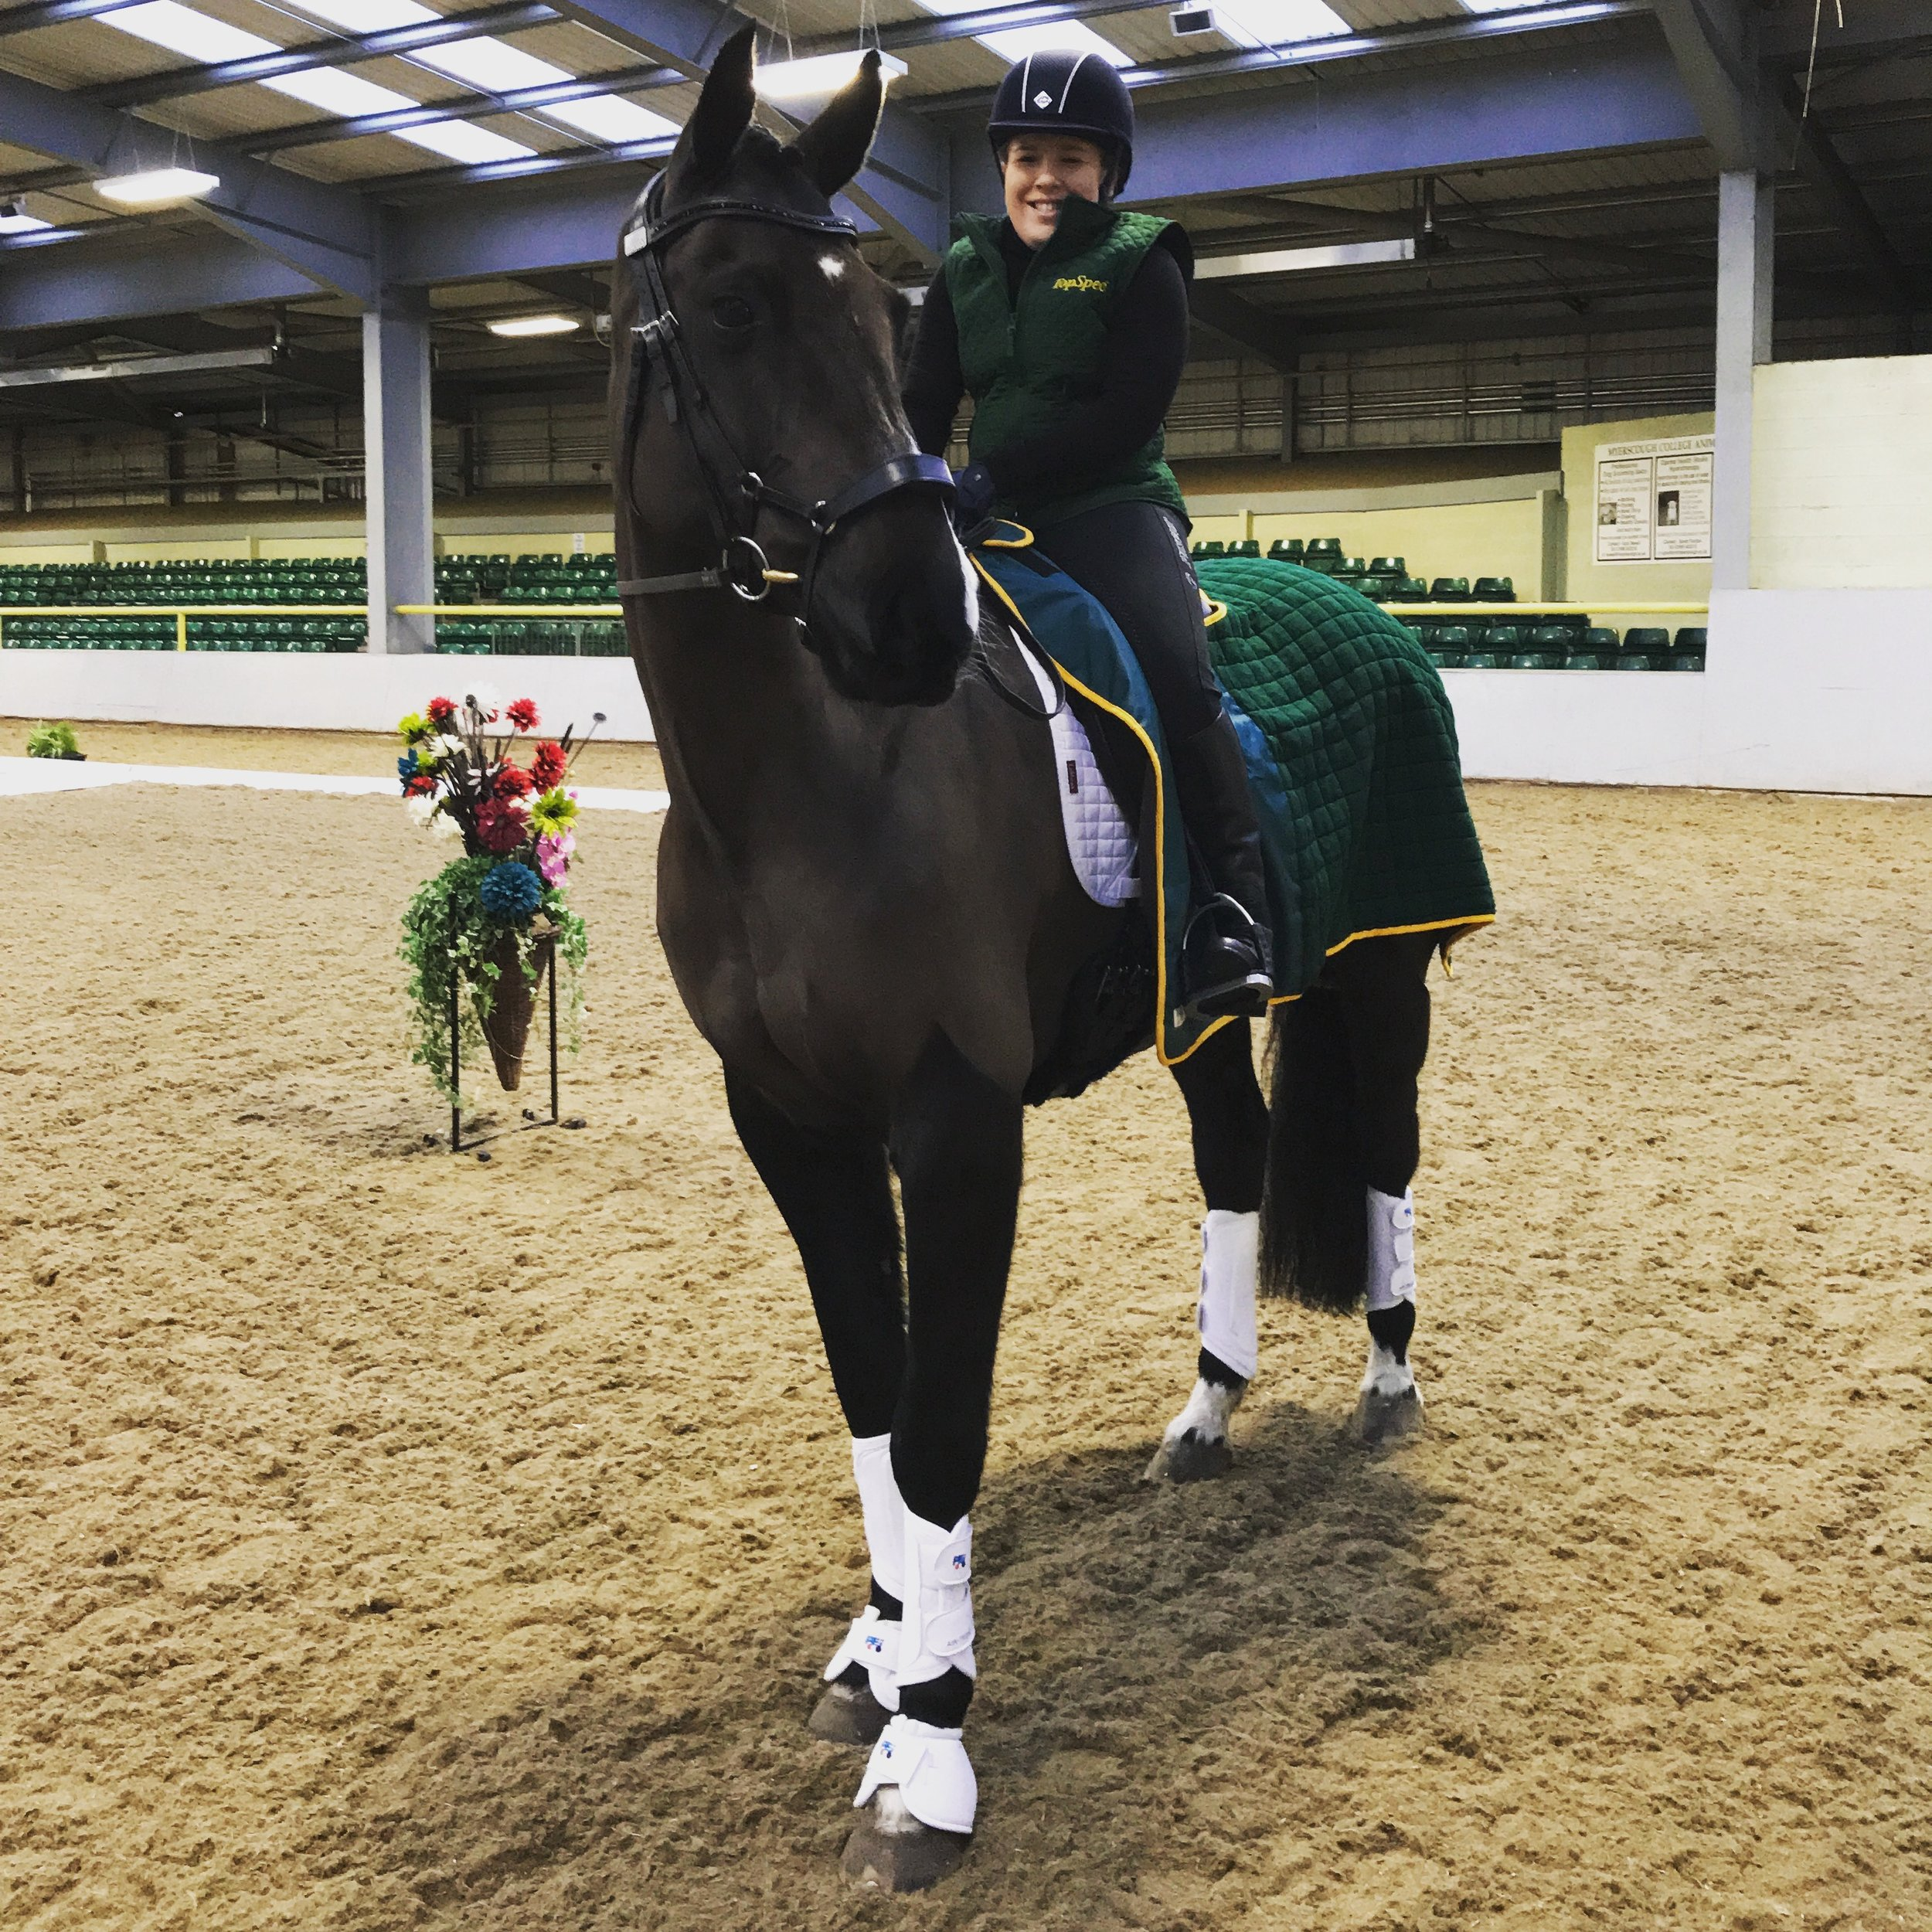 The Horses - Learn more about Natasha's horses and how they have helped Natasha become the rider that she is today